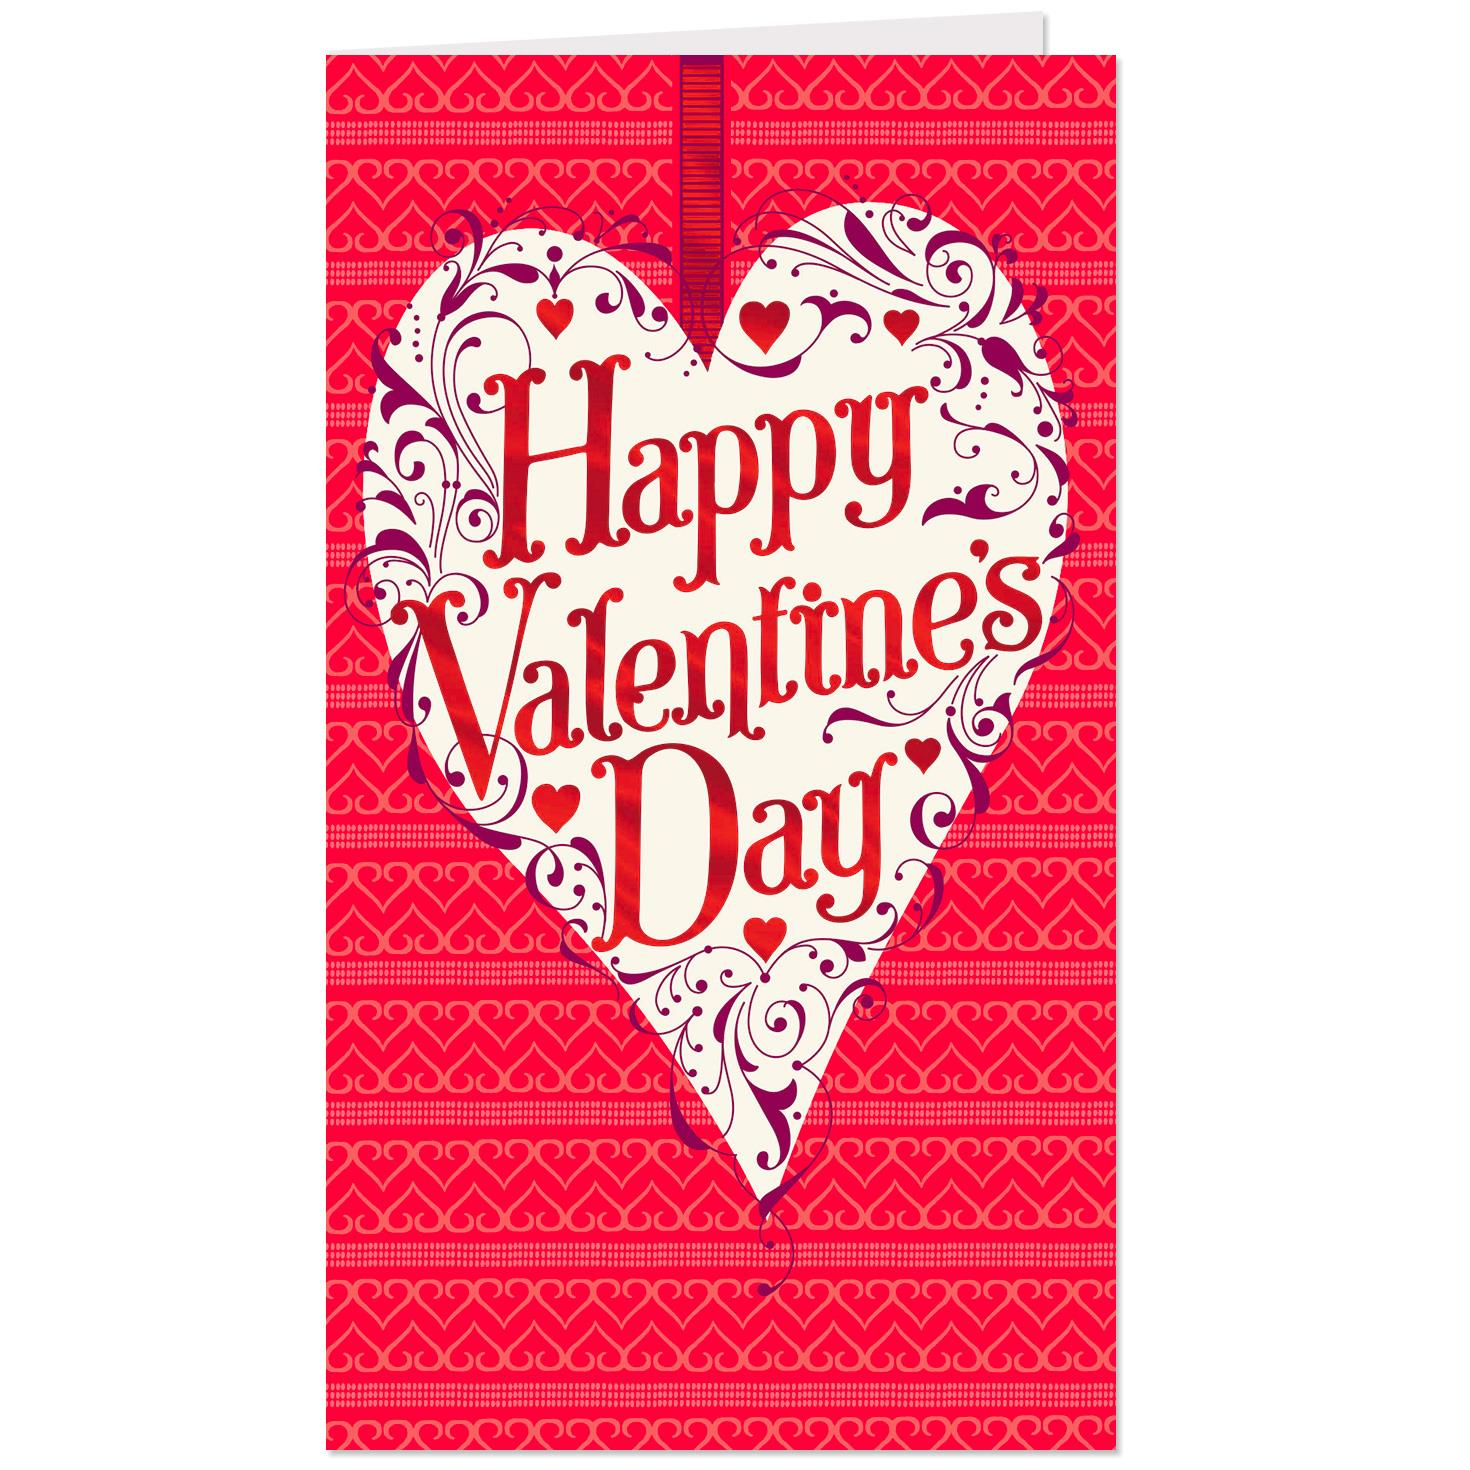 sent with love valentine's day cards pack of 6  boxed